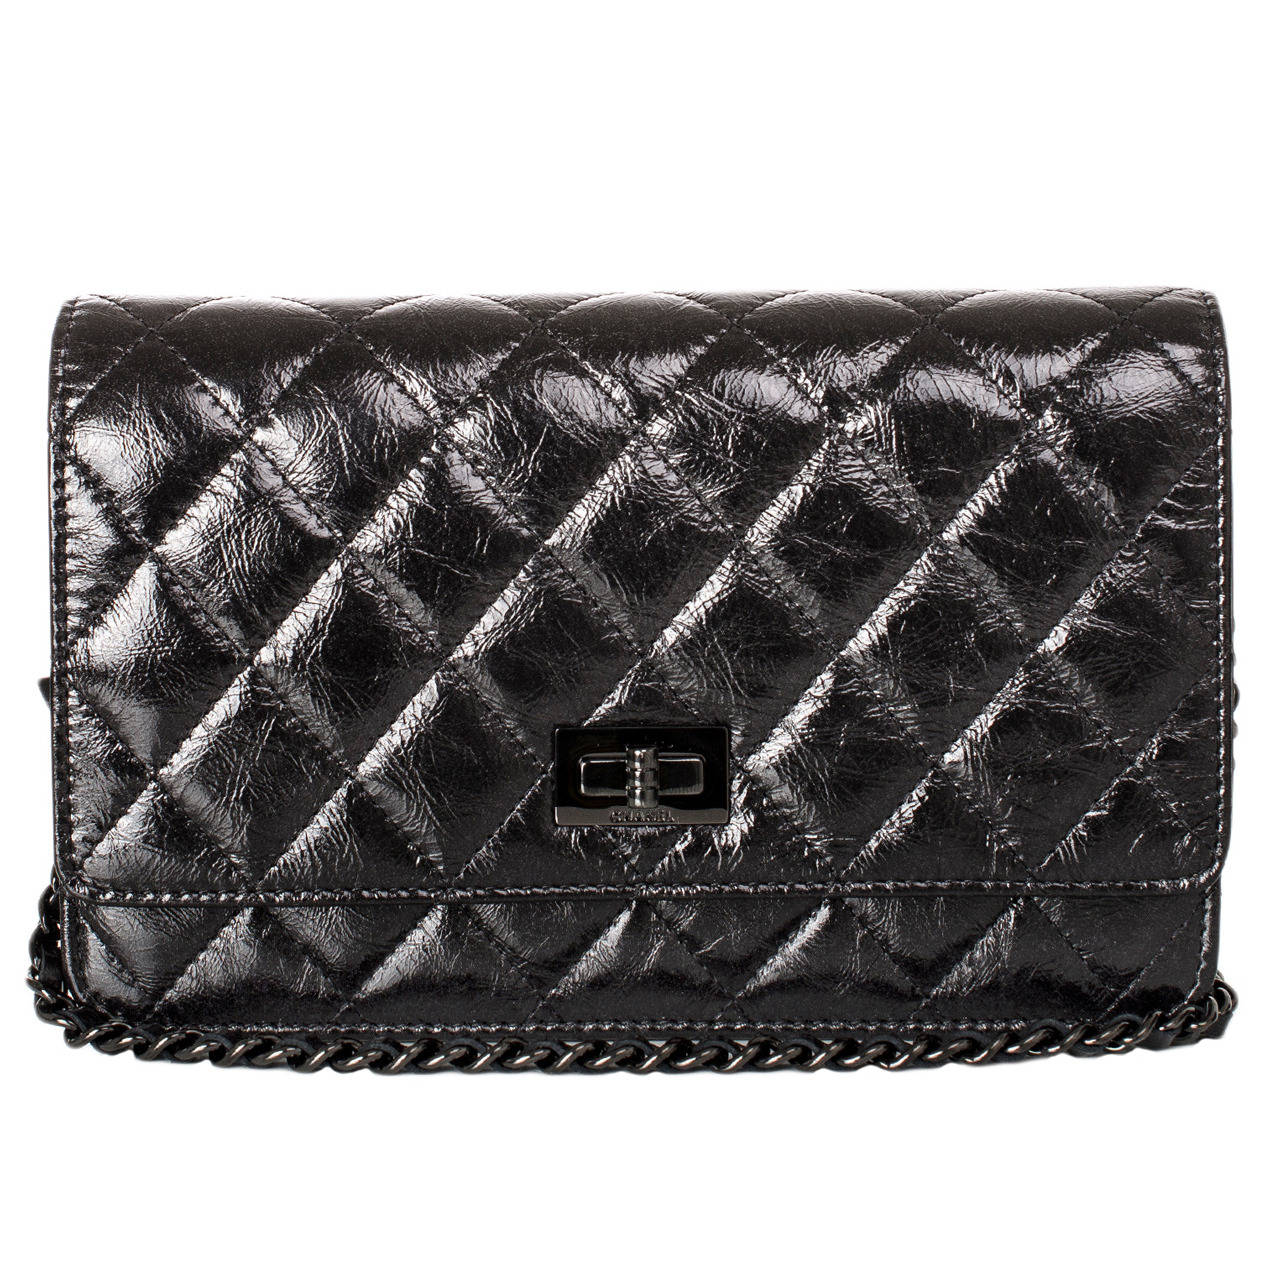 0d893609ead2 Chanel  quot So Black quot  2.55 Reissue Quilted Calfskin Wallet ...